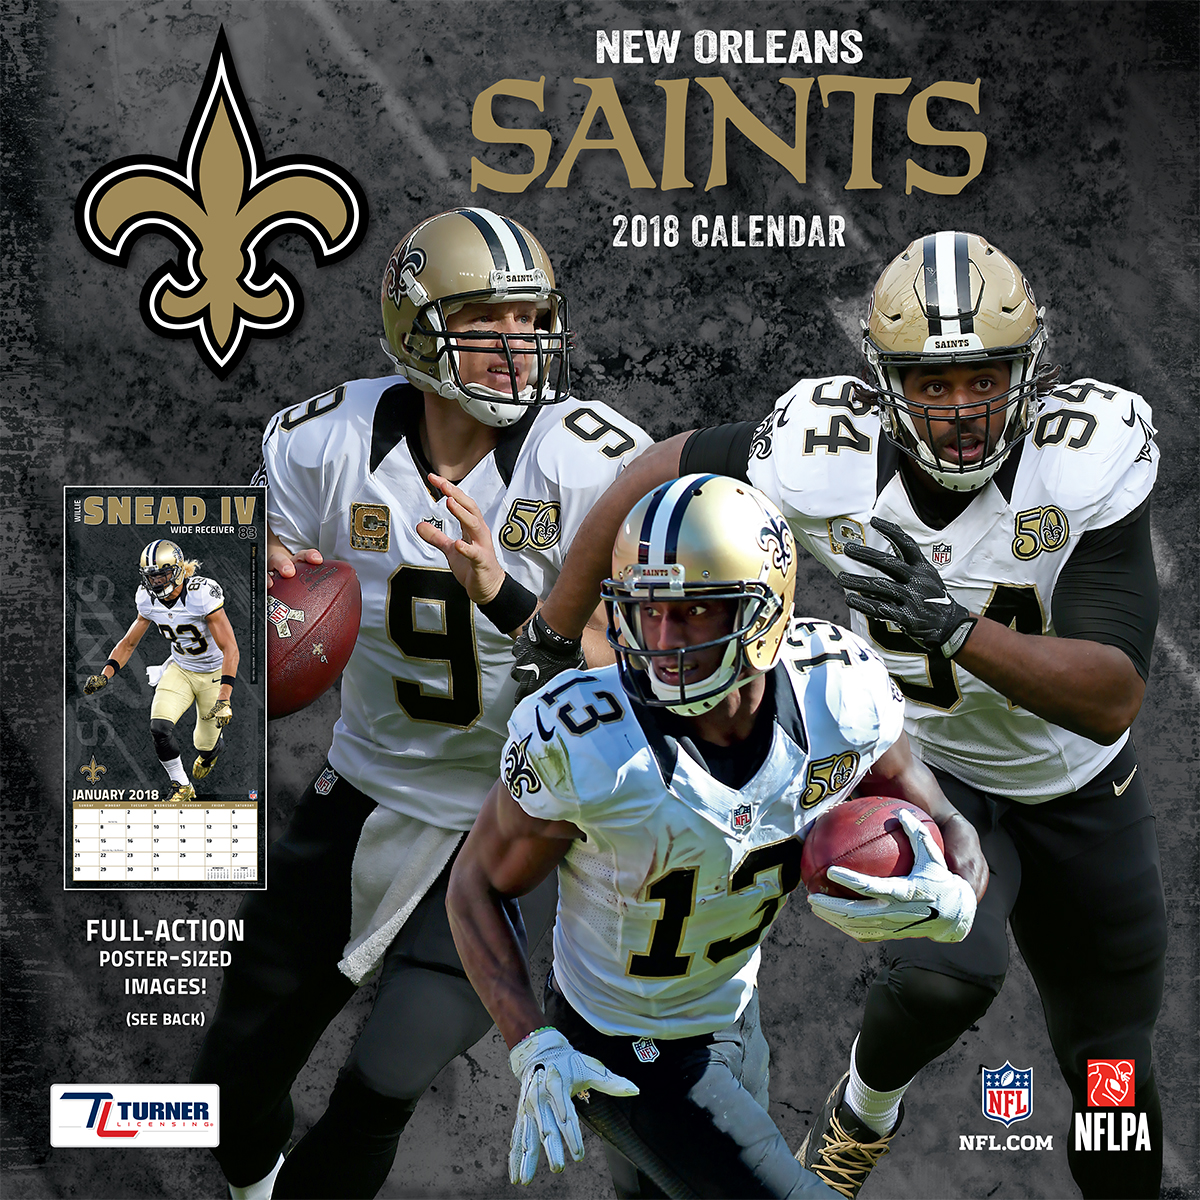 Turner Sports New Orleans Saints 2018 12x12 Team Wall Calendar